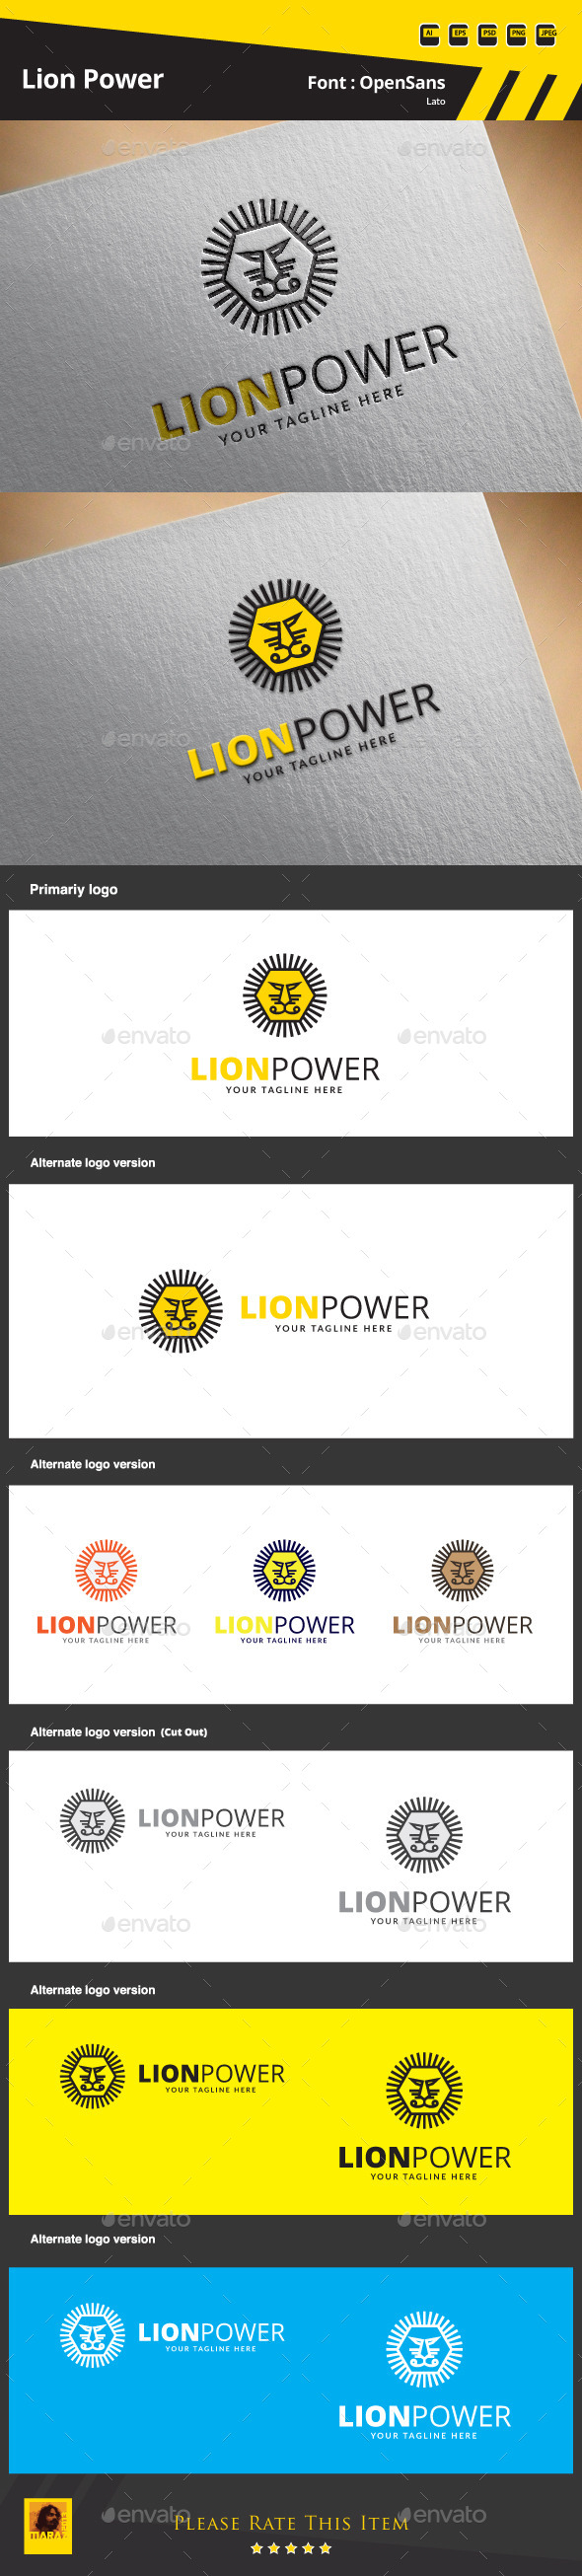 GraphicRiver Lion Power Logo Template 9683487